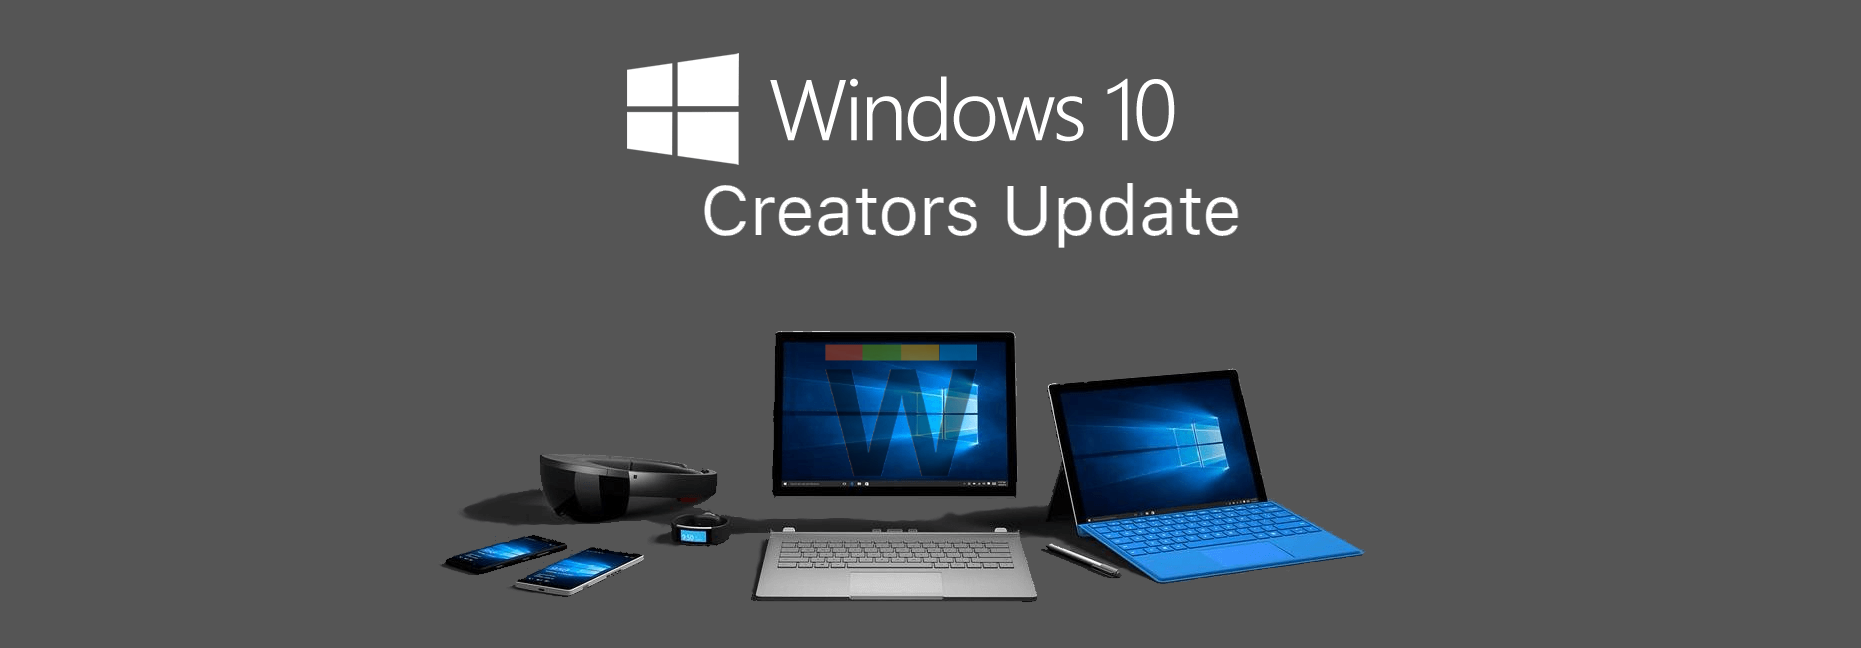 Windows 10 creators update now available via update for Windows 10 update